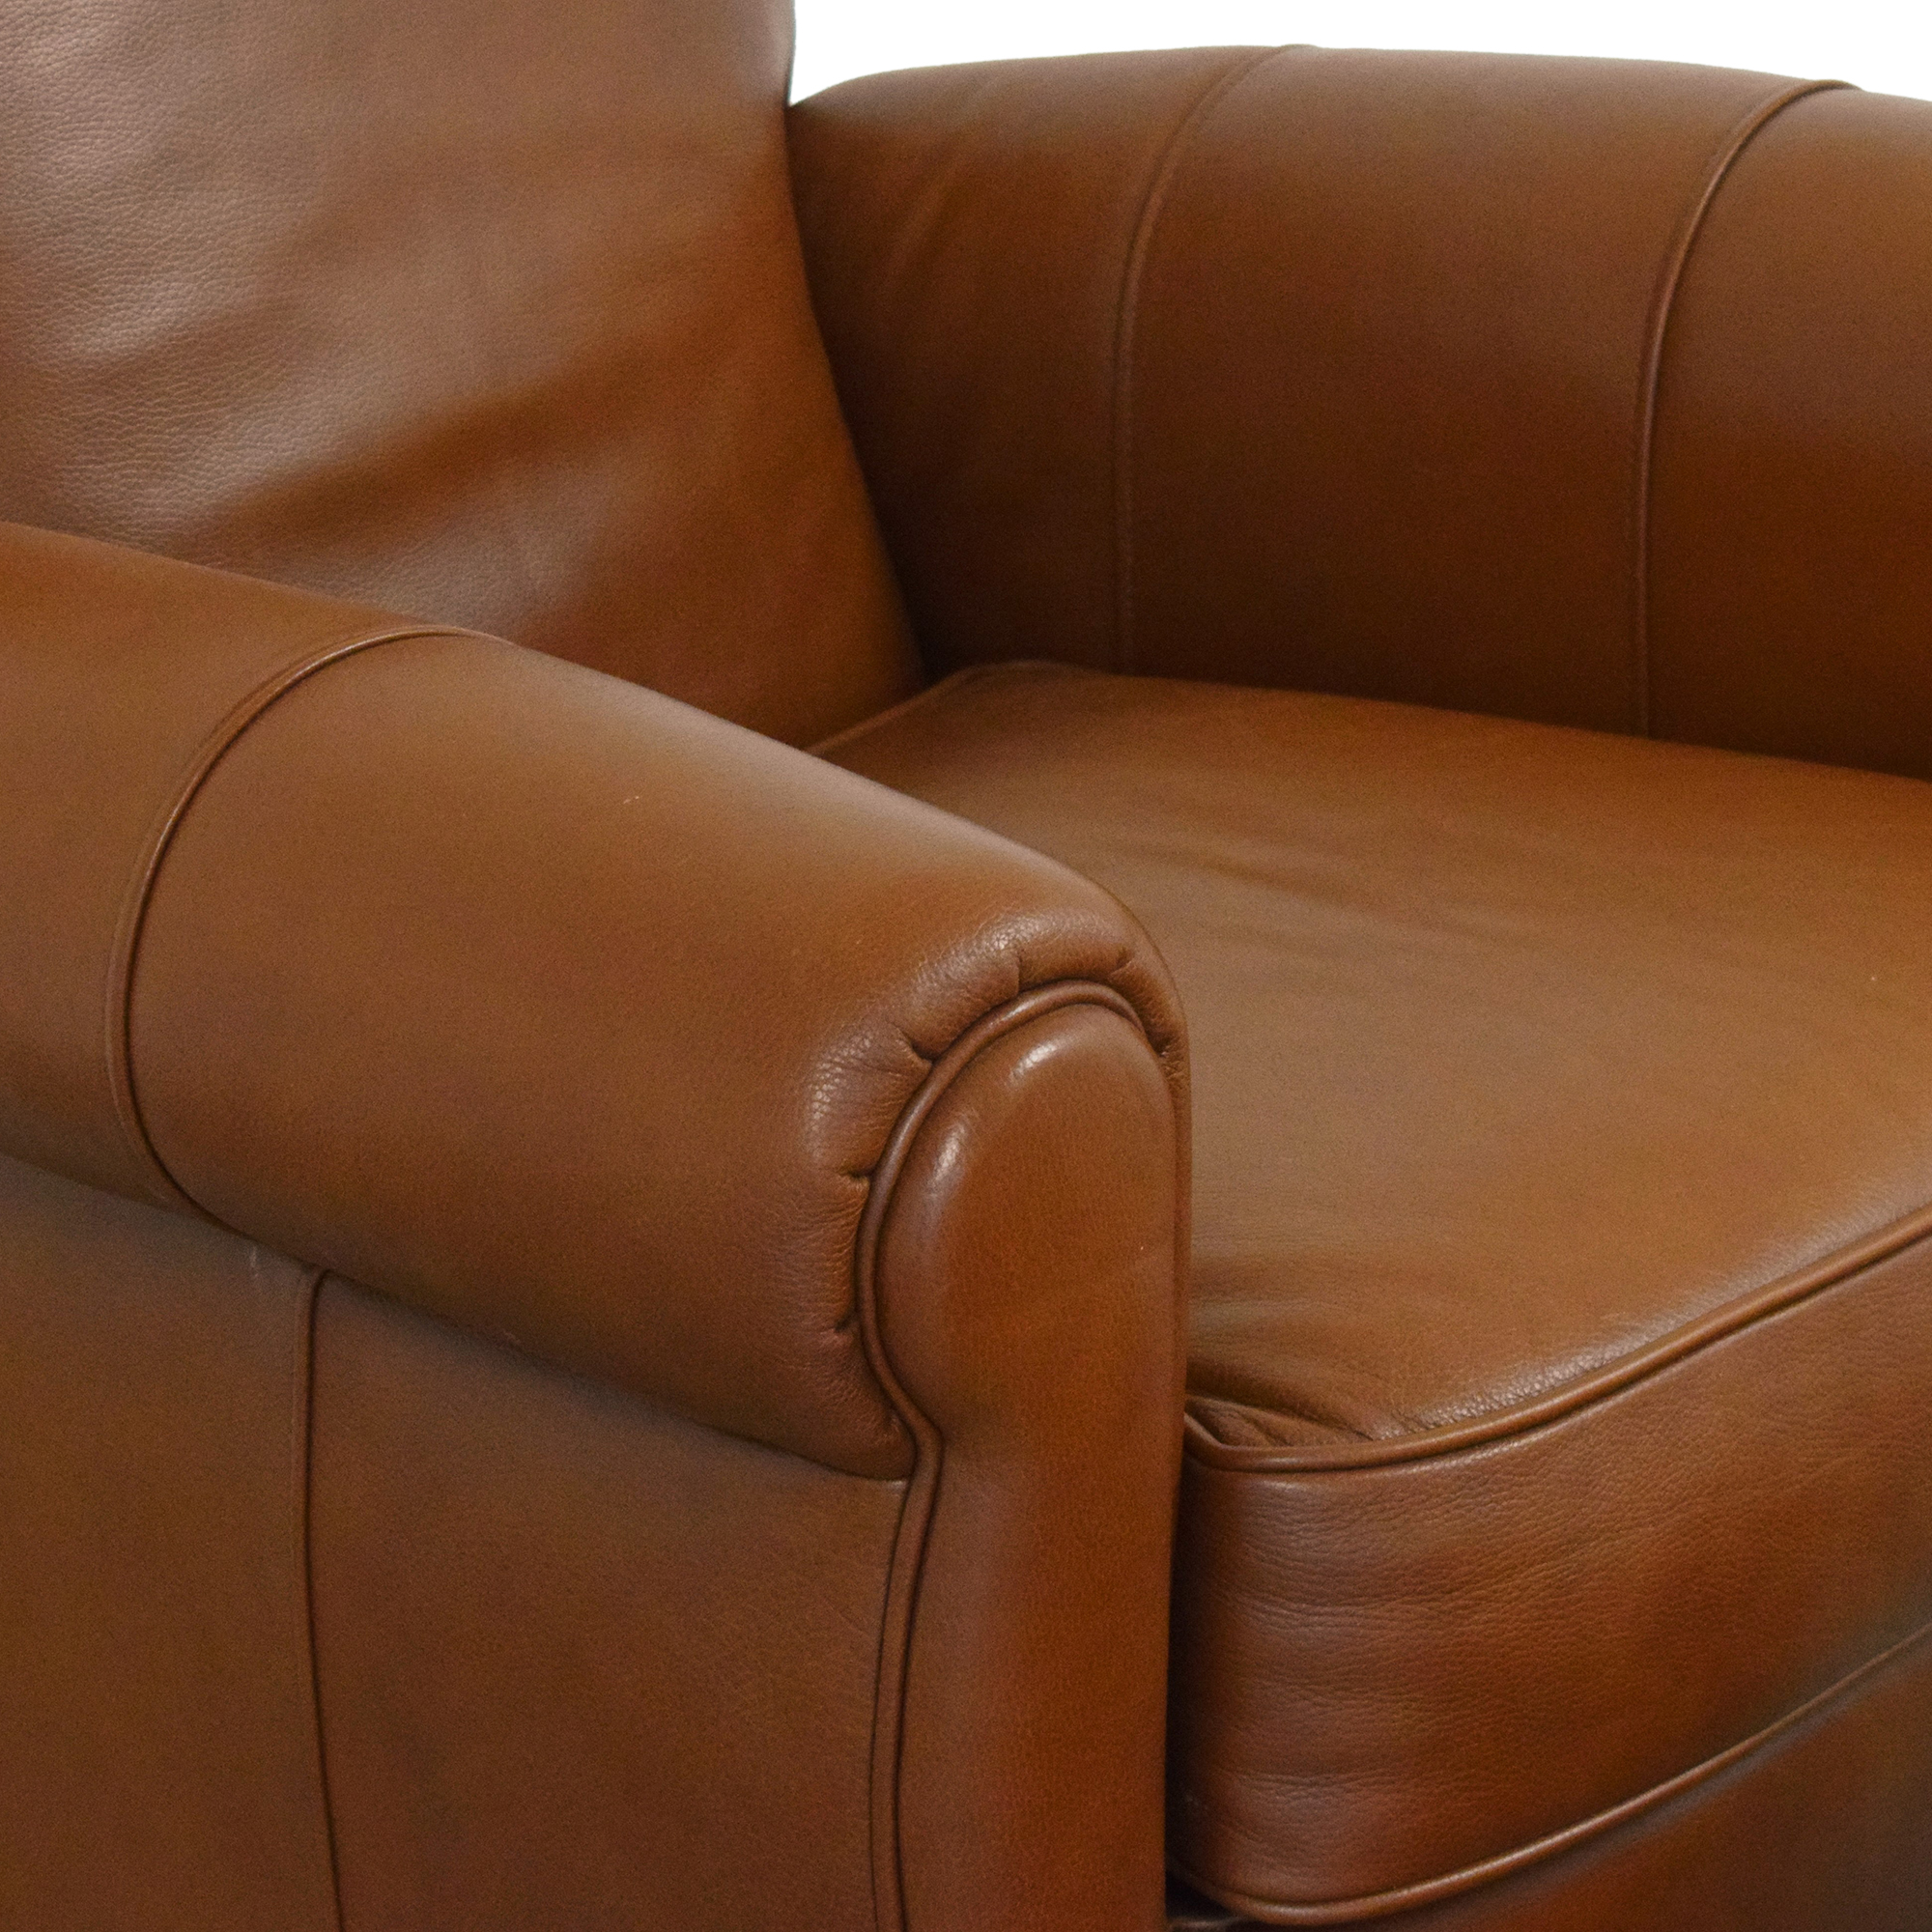 Ethan Allen Roll Arm Chair with Ottoman sale